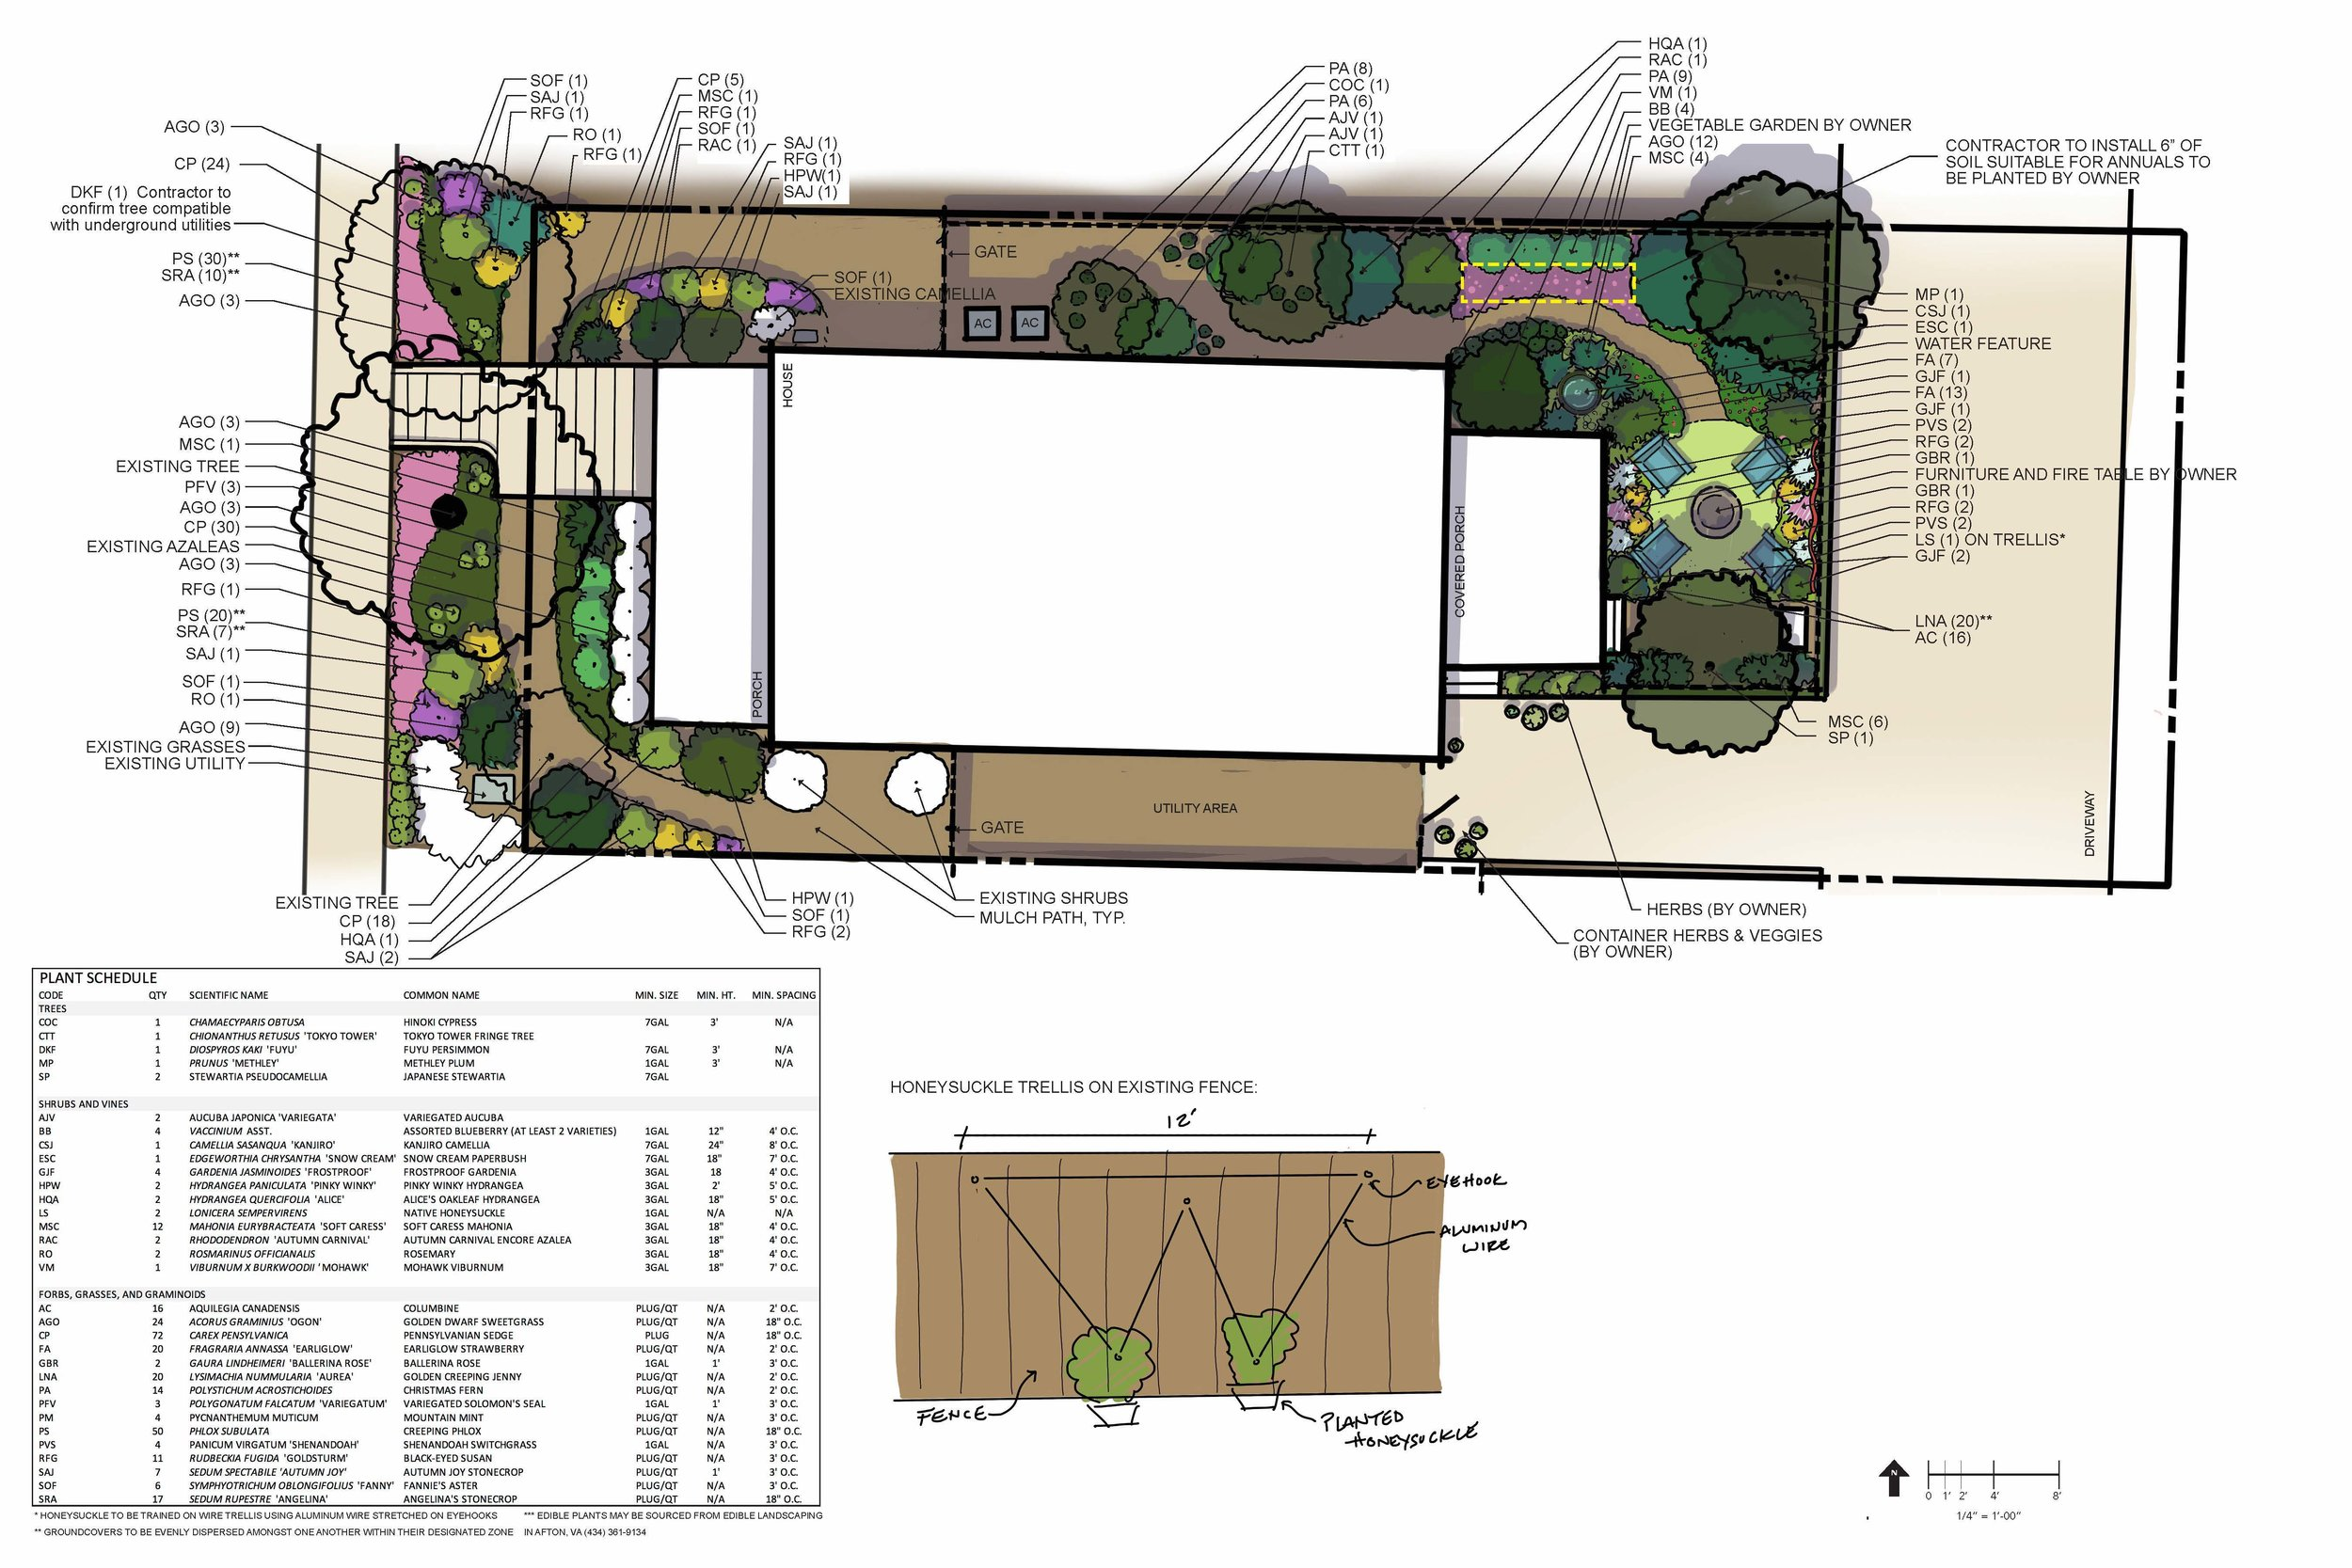 Residential landscape plan seeking to maximize opportunities for outdoor lounging where impervious surface limitations prevent the development of a hard-surfaced or gravel patio. Edible plants are interwoven into the design to allow for browsing while pollinator and bird-friendly plants ensure the space is popular with client-targeted species of wildlife.